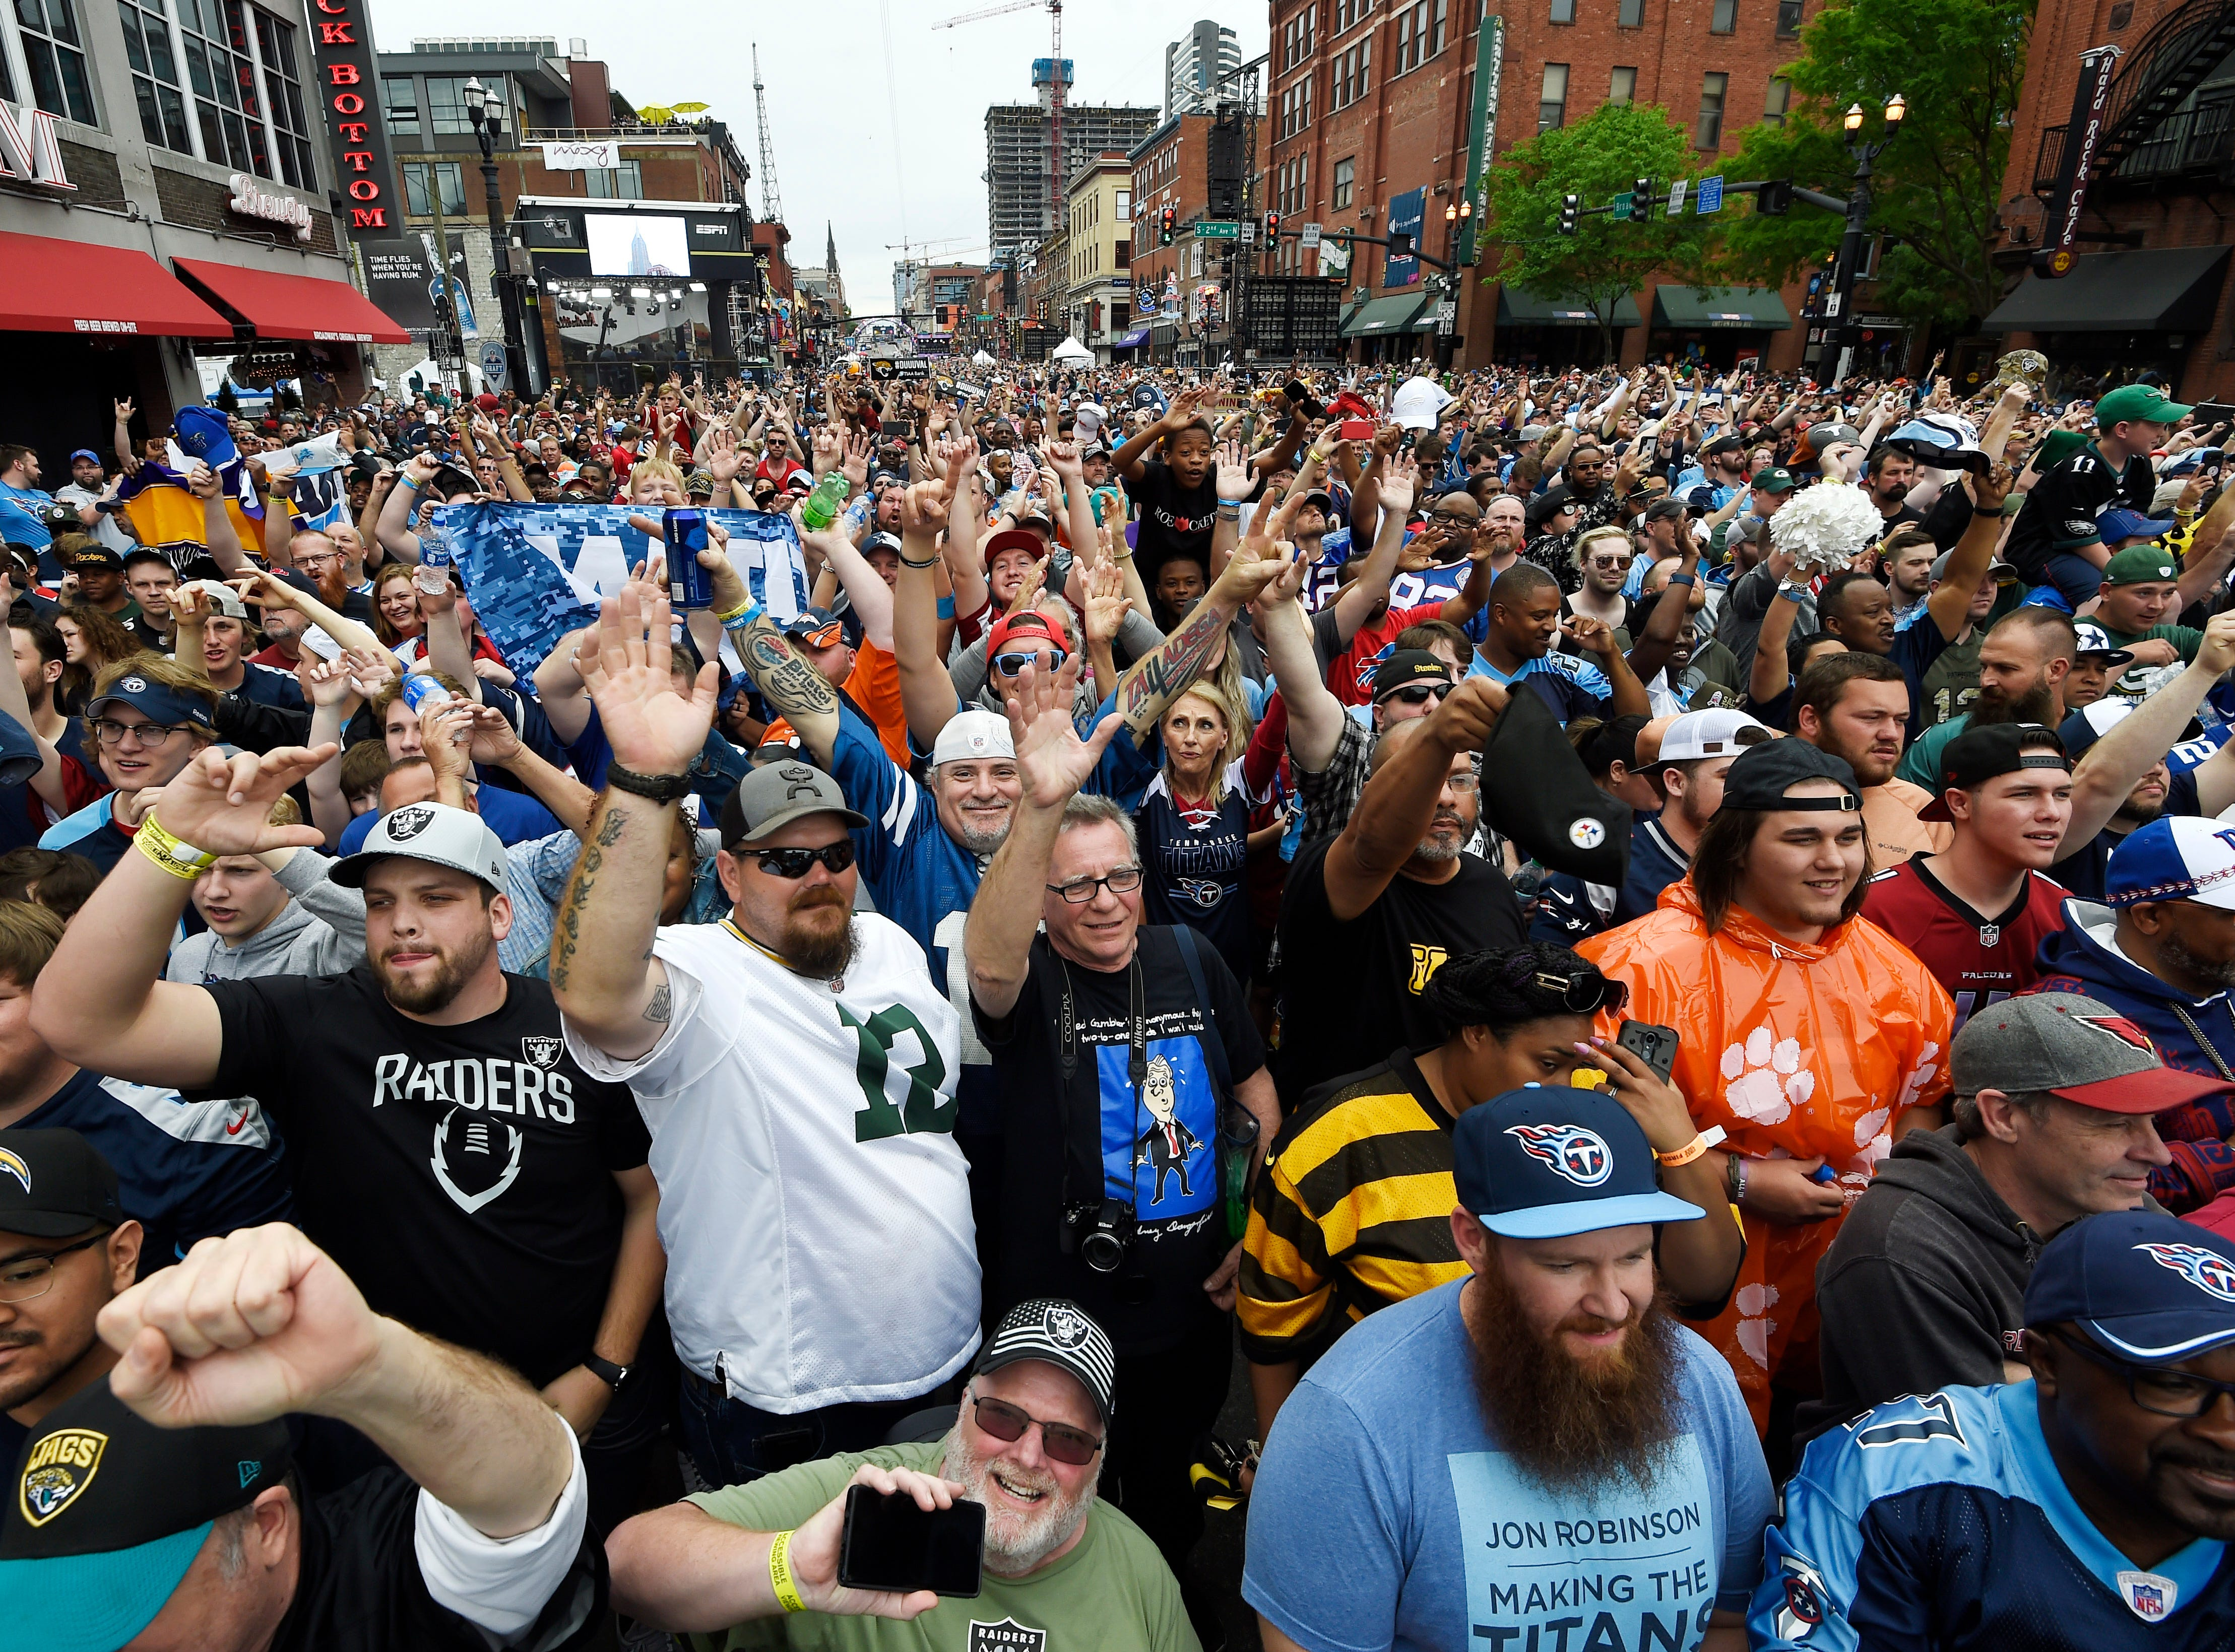 Fans fill Lower Broadway before the first round of the NFL Draft Thursday, April 25, 2019 in Nashville, Tenn.